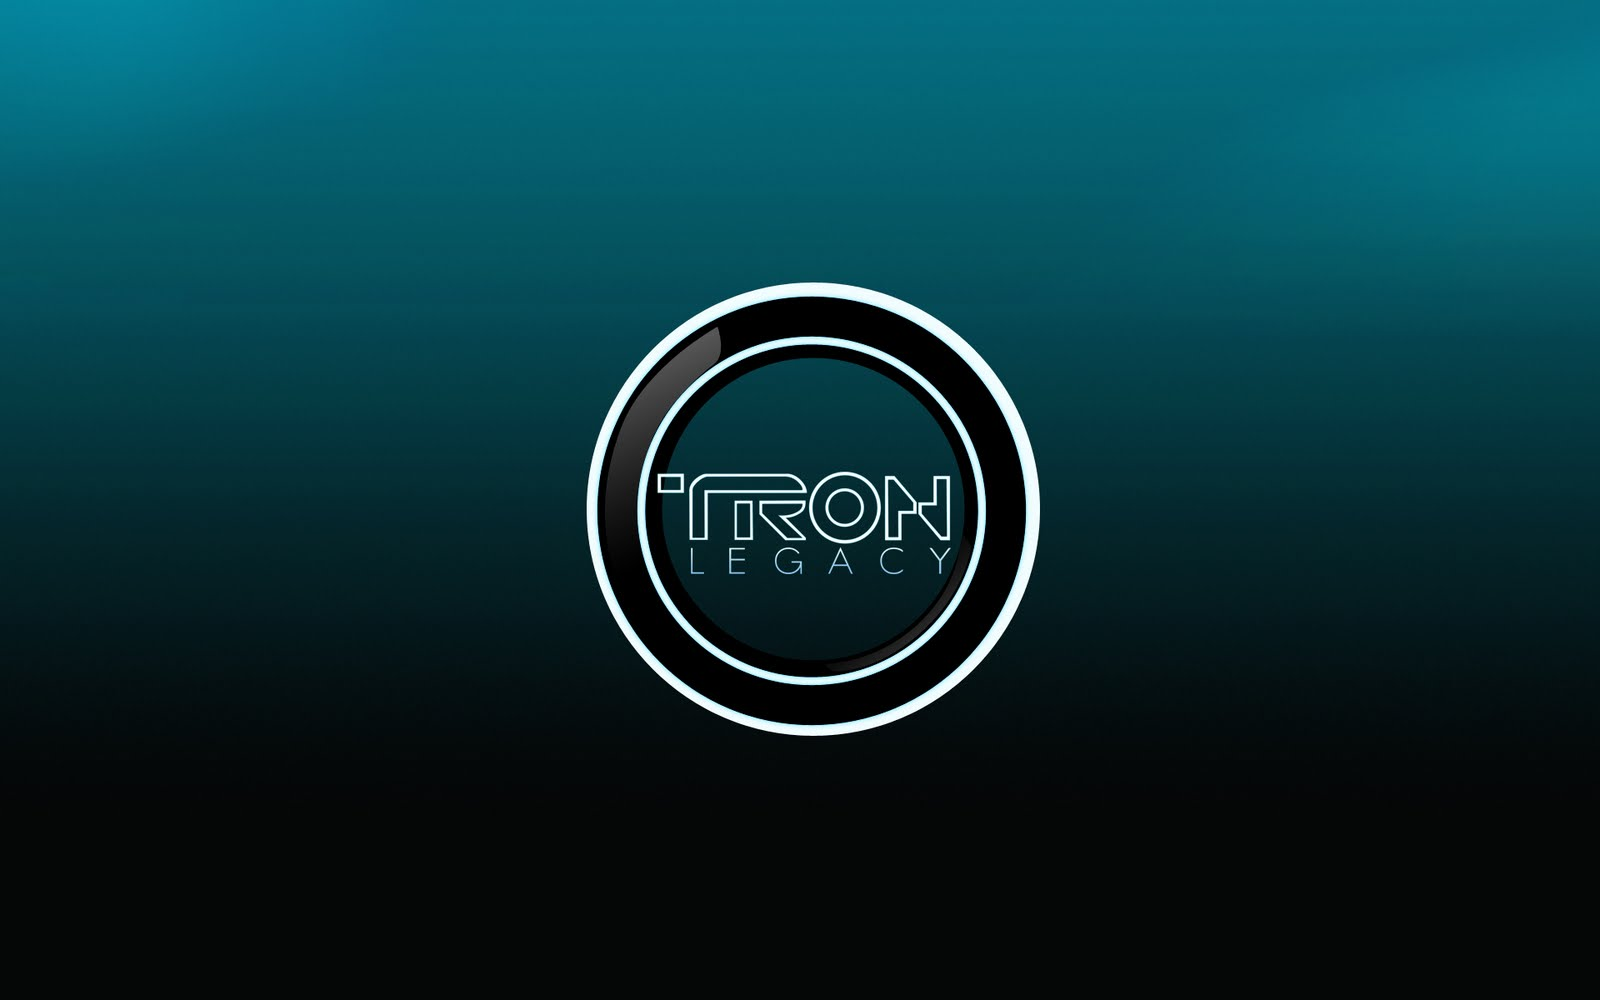 disney's tron legacy logo desktop wallpaper